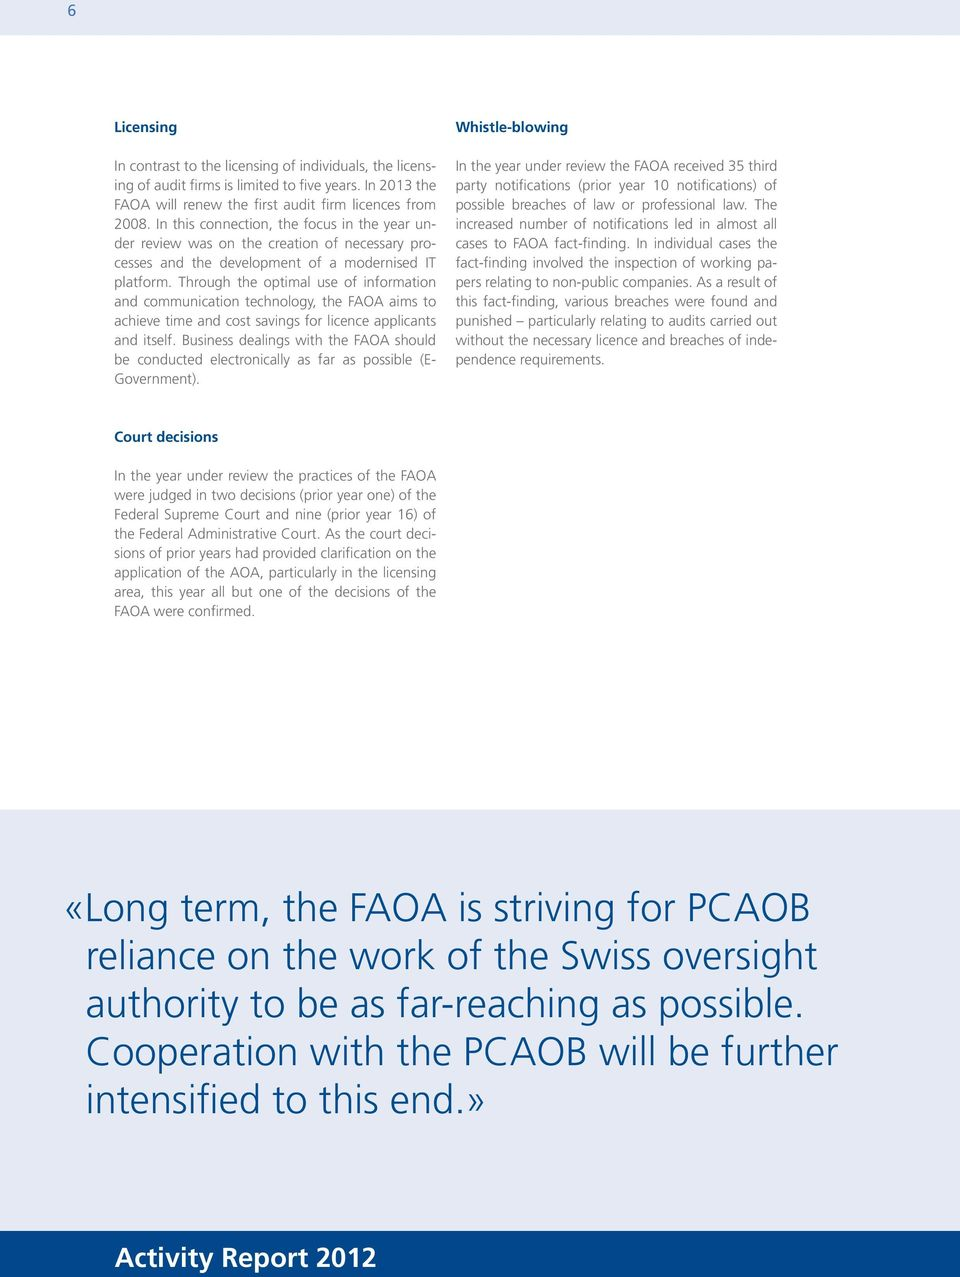 Through the optimal use of information and communication technology, the FAOA aims to achieve time and cost savings for licence applicants and itself.